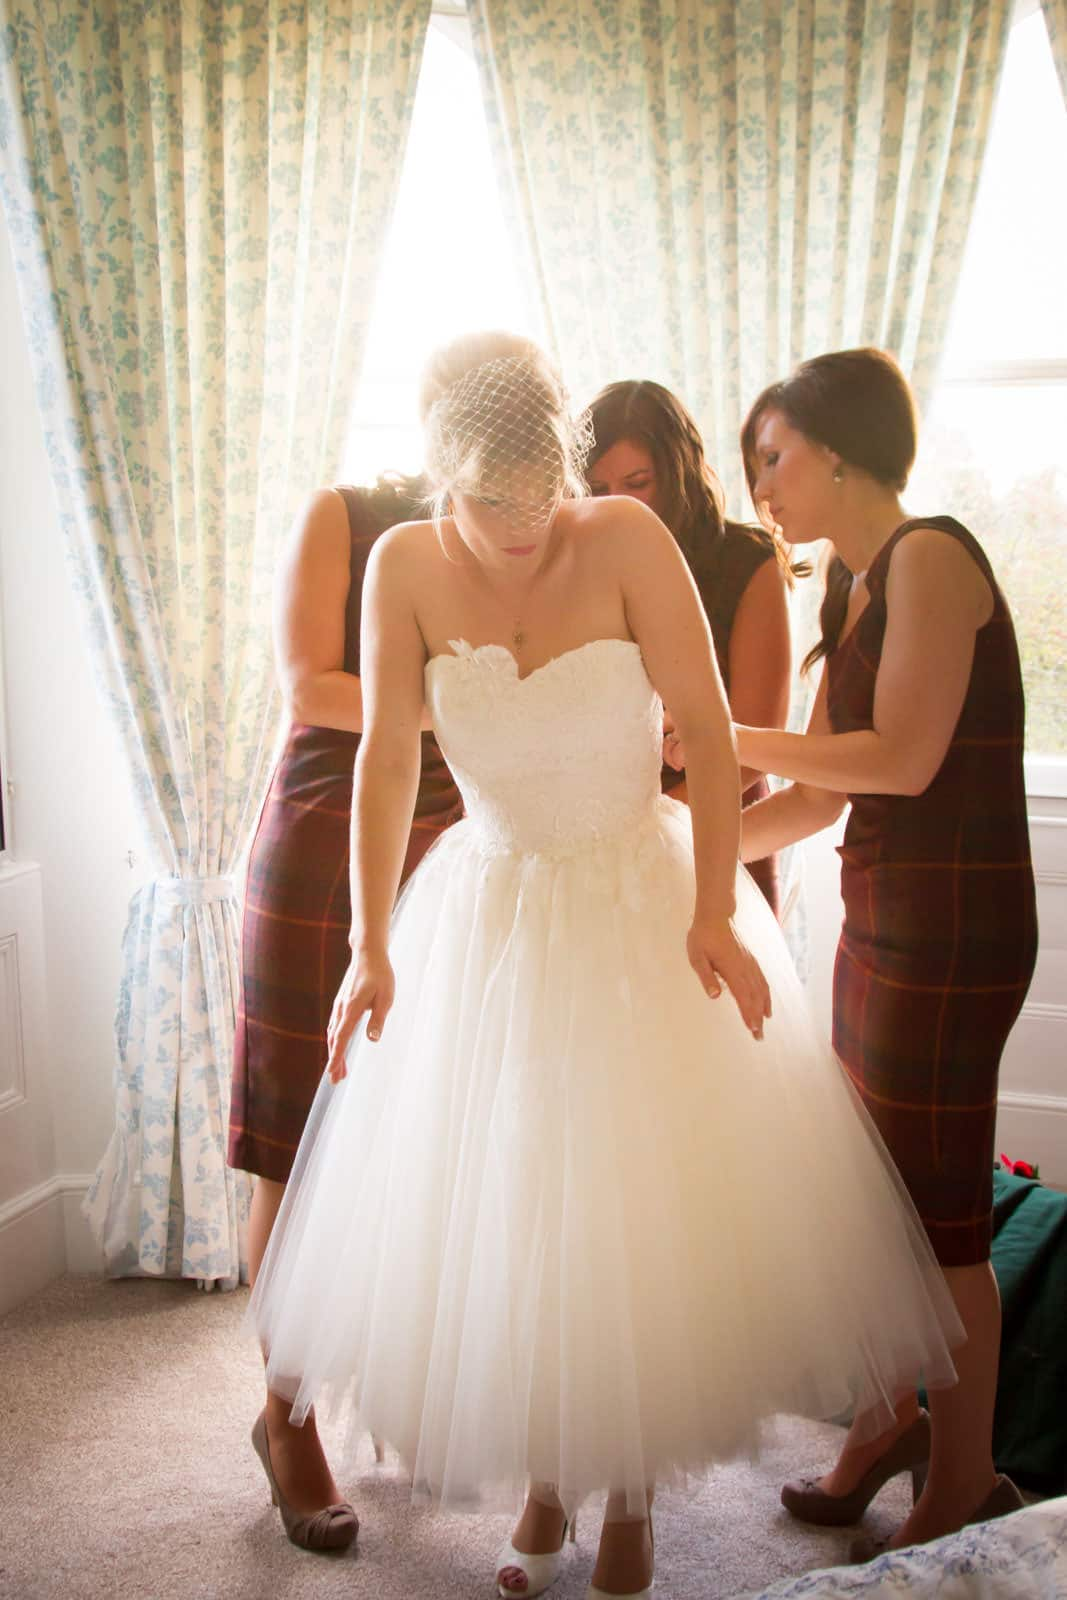 Bridesmaids doing up wedding dress for bride